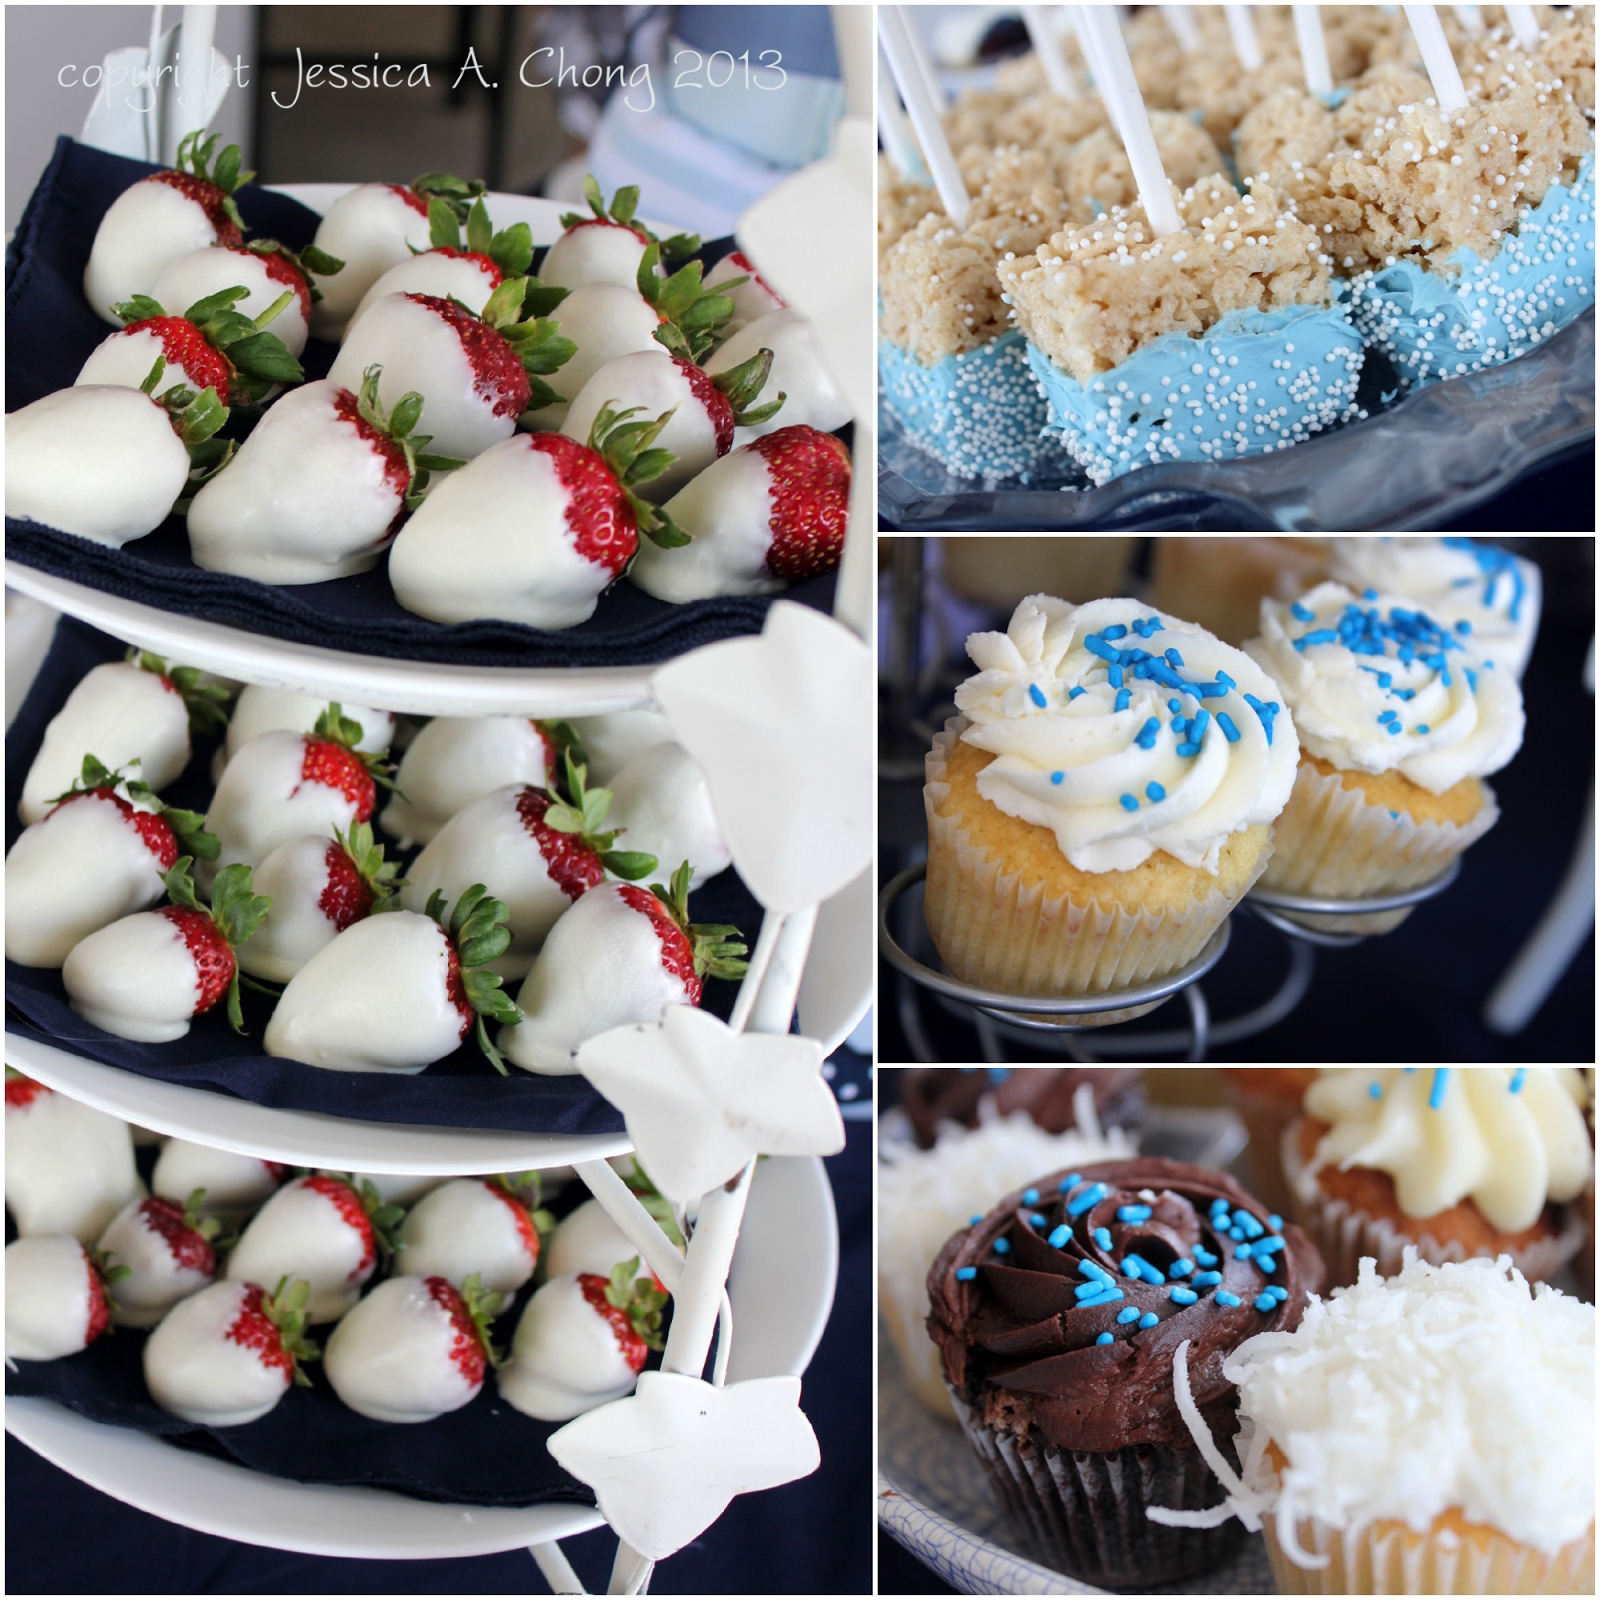 10 Perfect Baby Shower Food Ideas Pinterest pinterest baby shower ideas for boy omega center ideas for baby 2021